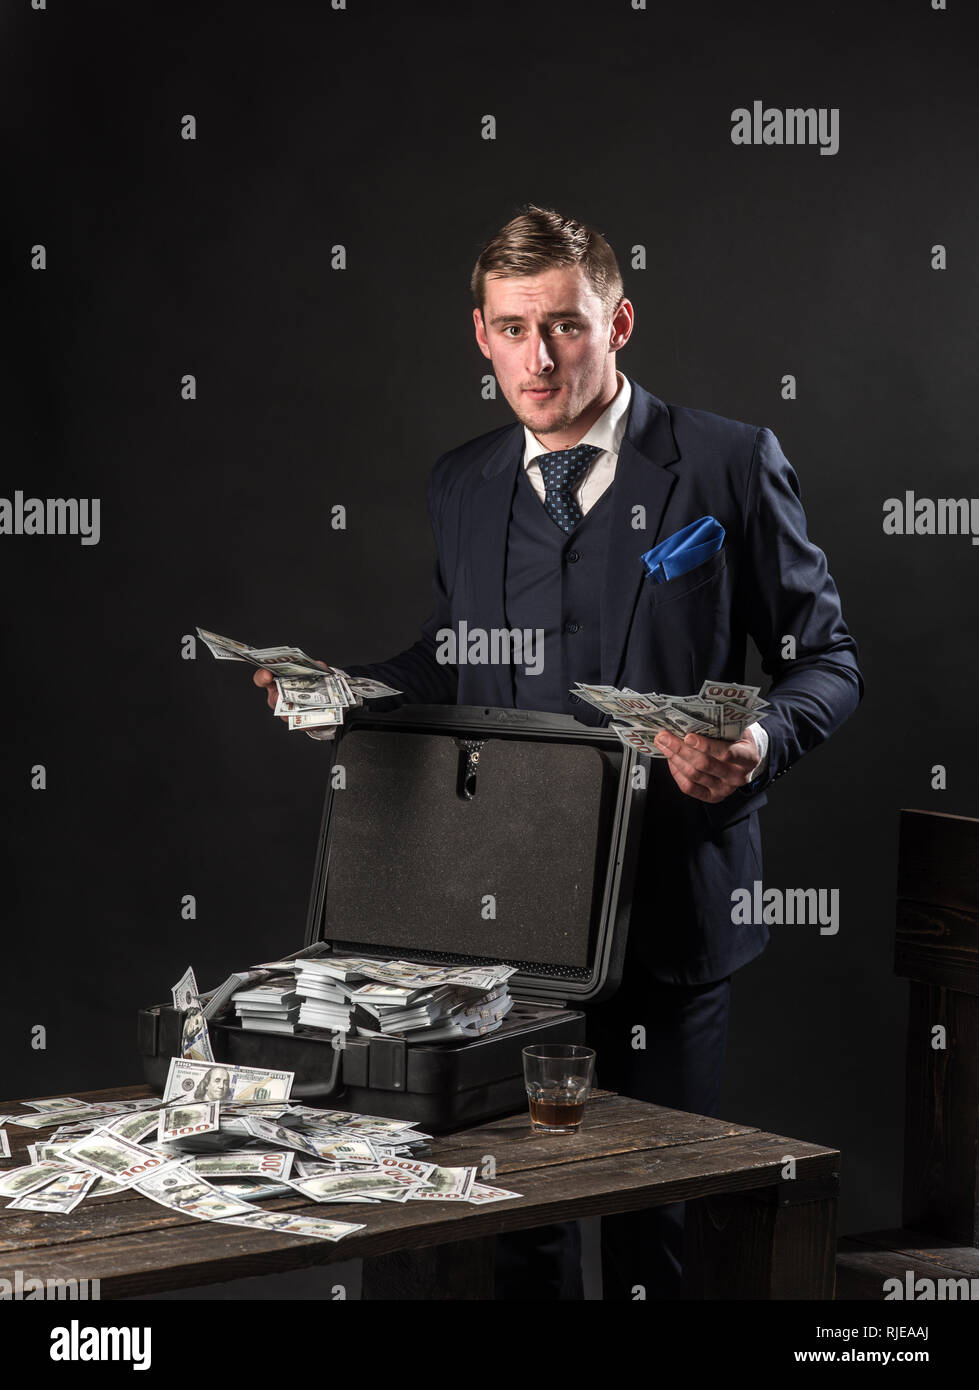 Businessman work in accountant office. Small business concept. Man in suit. Mafia. Making money. Economy and finance. Man bookkeeper. Money - Stock Image